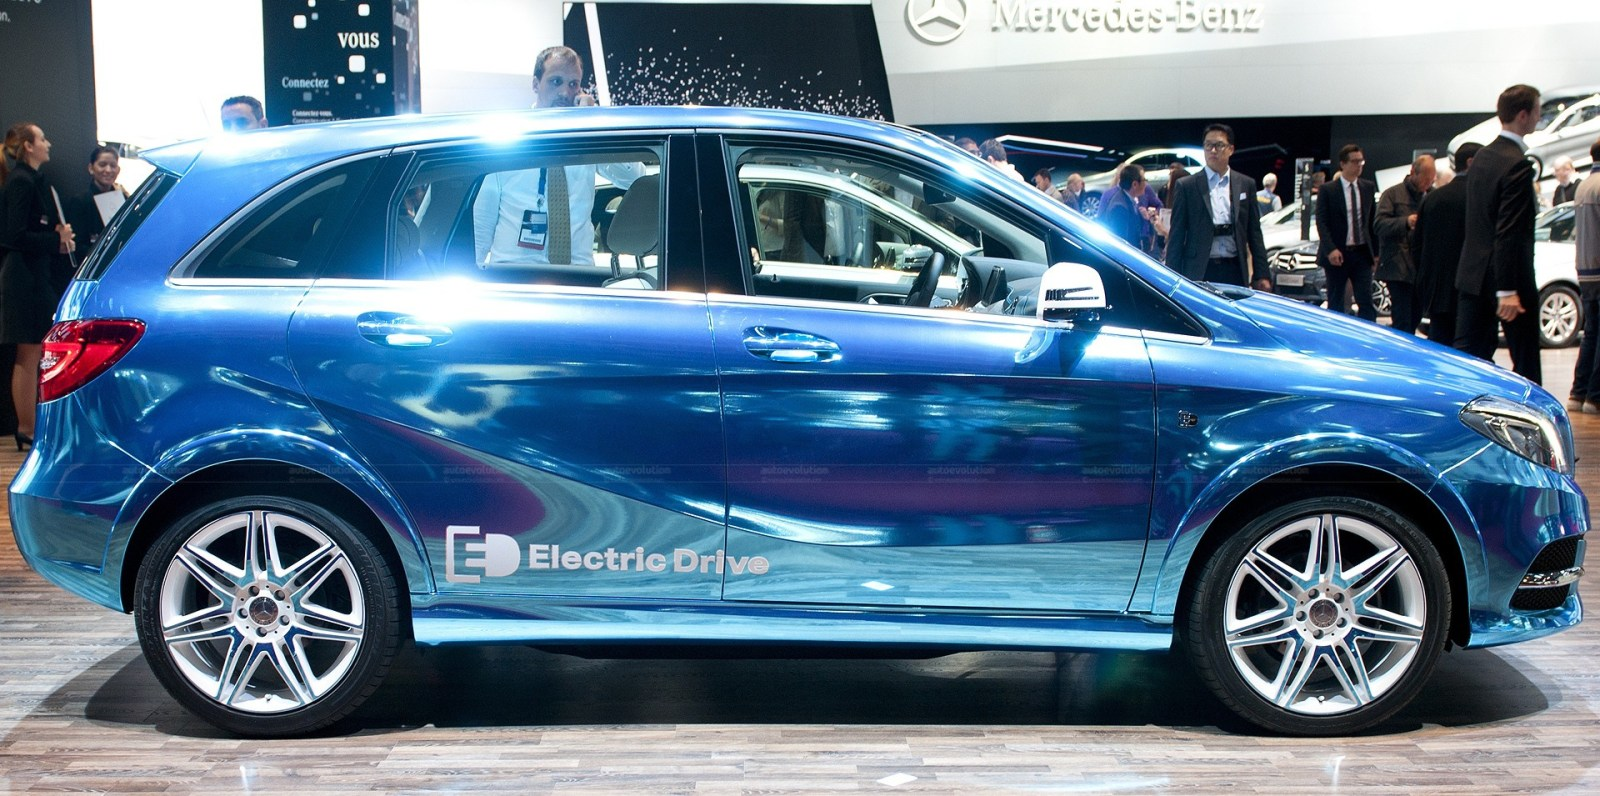 Mercedes Kills Their Only Electric Car Which They Never Actually